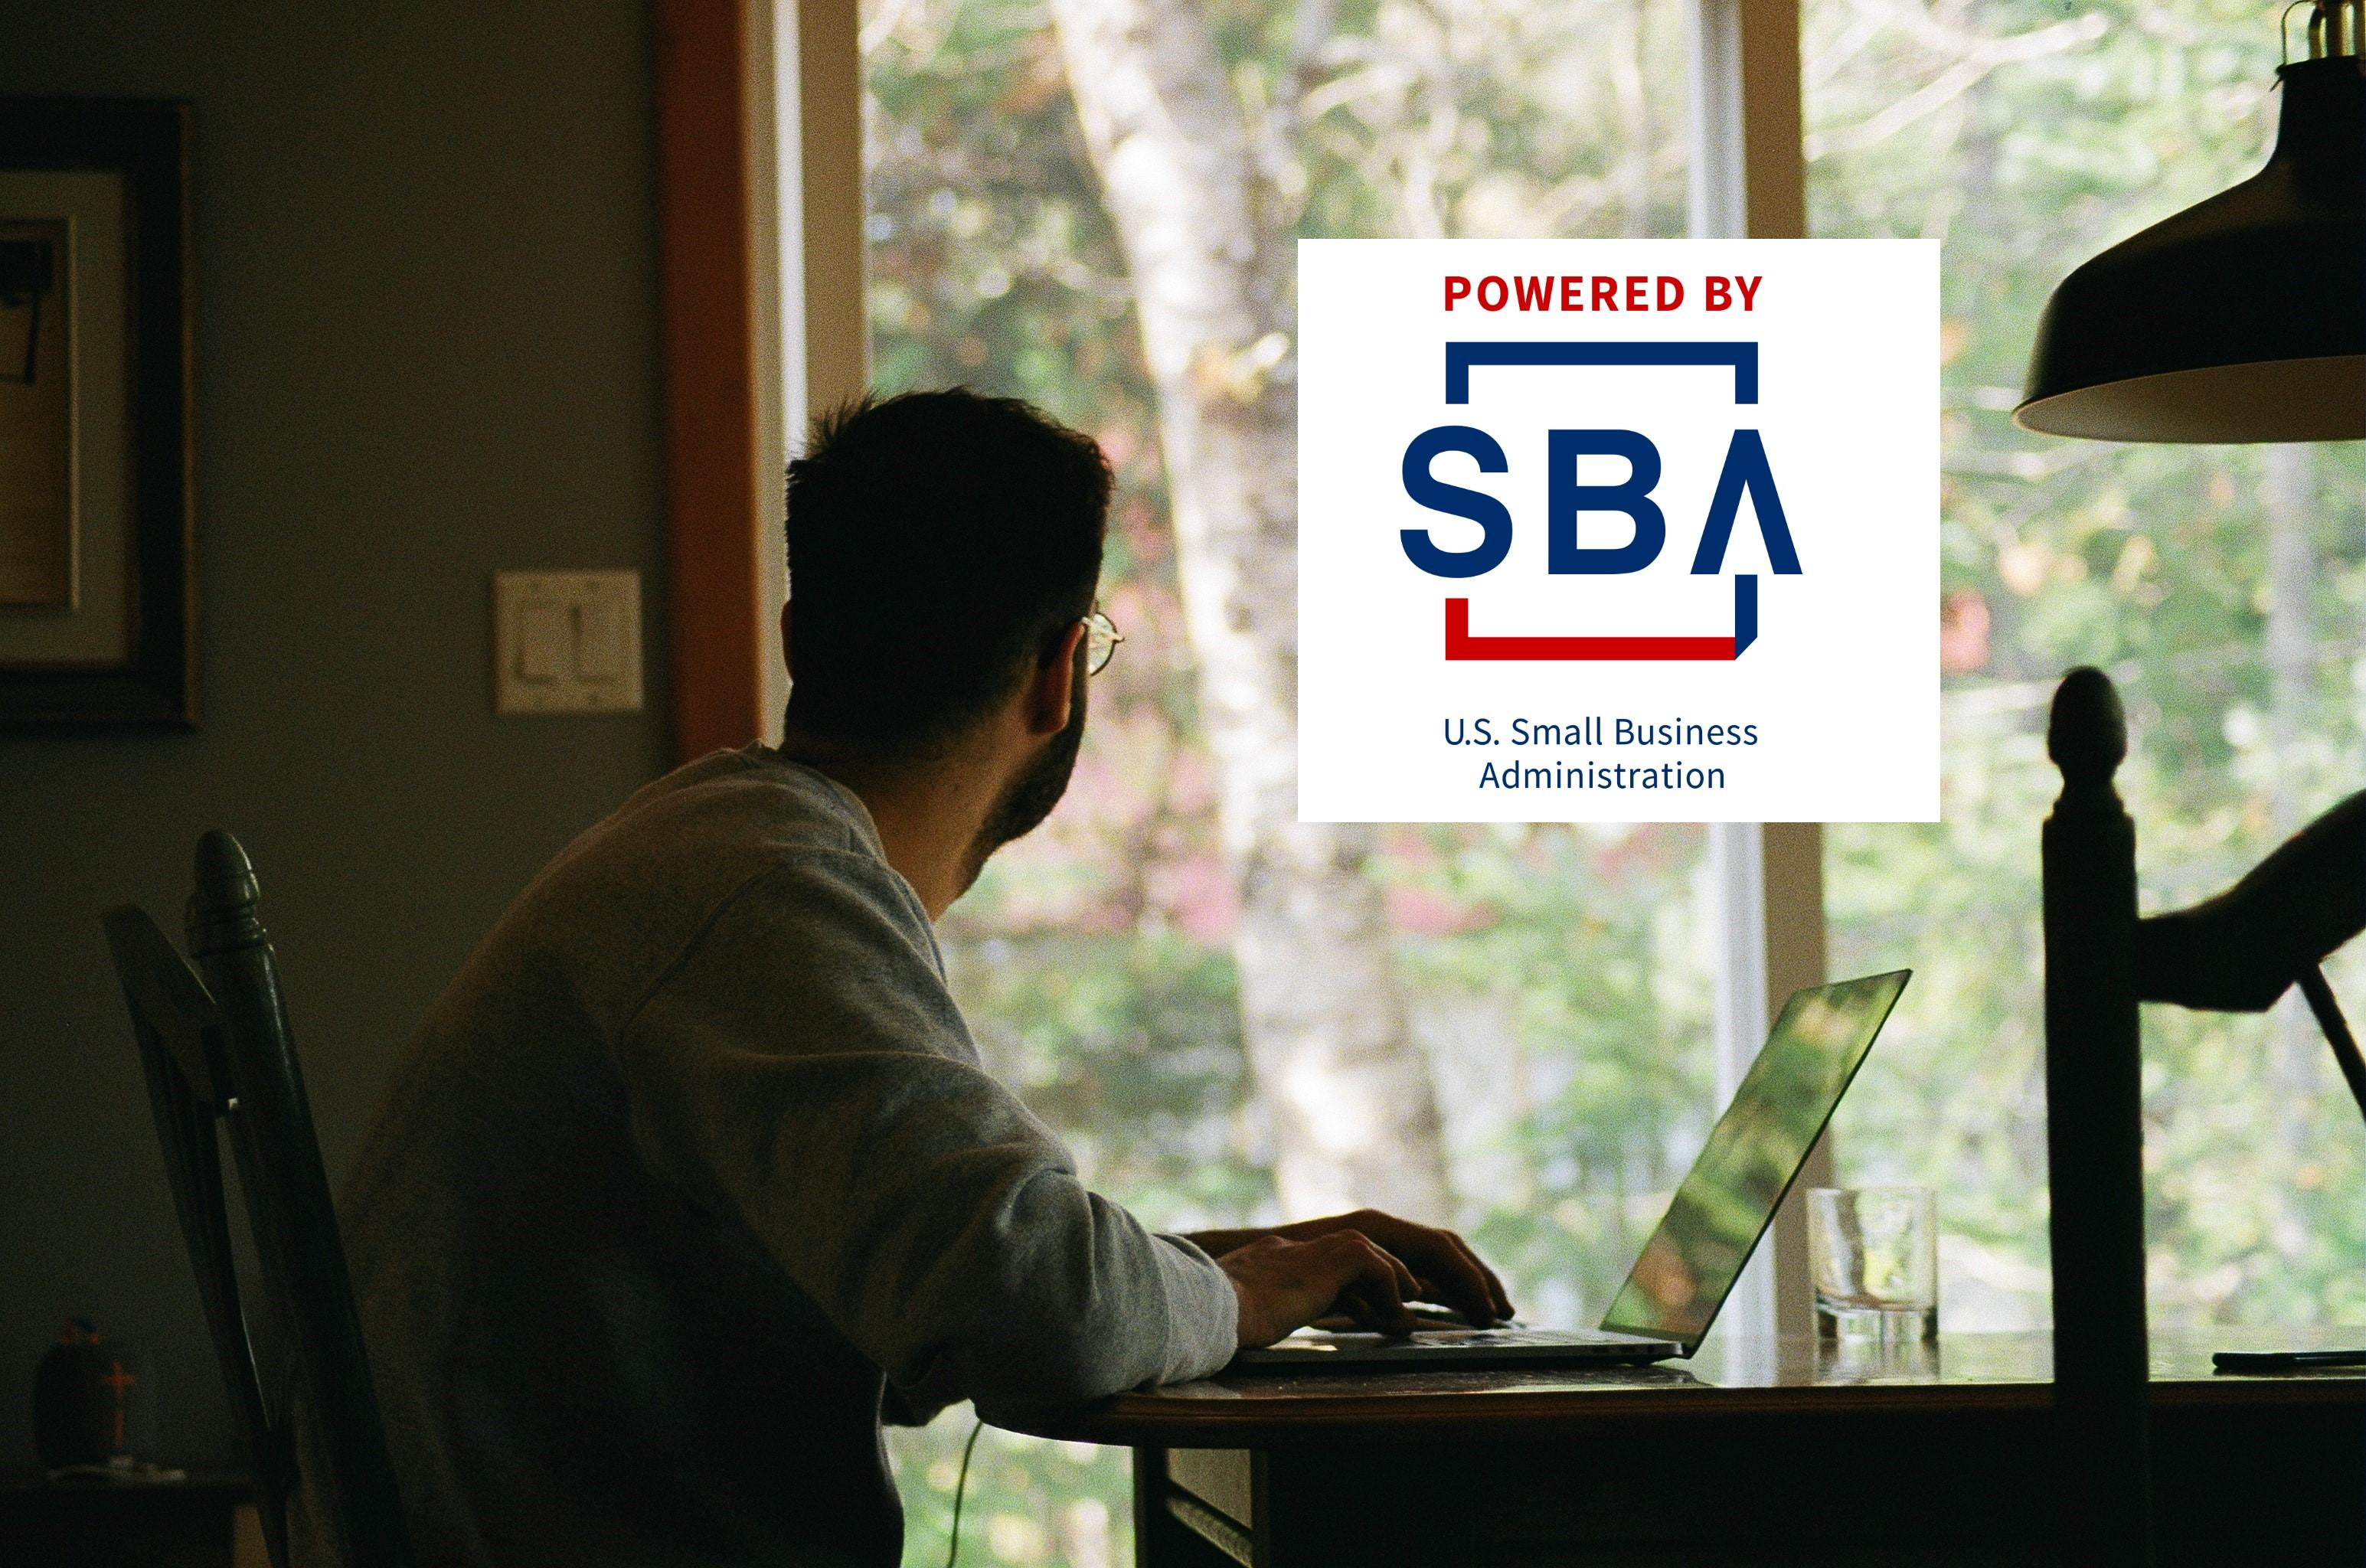 SBA logo over independent contractor working from home